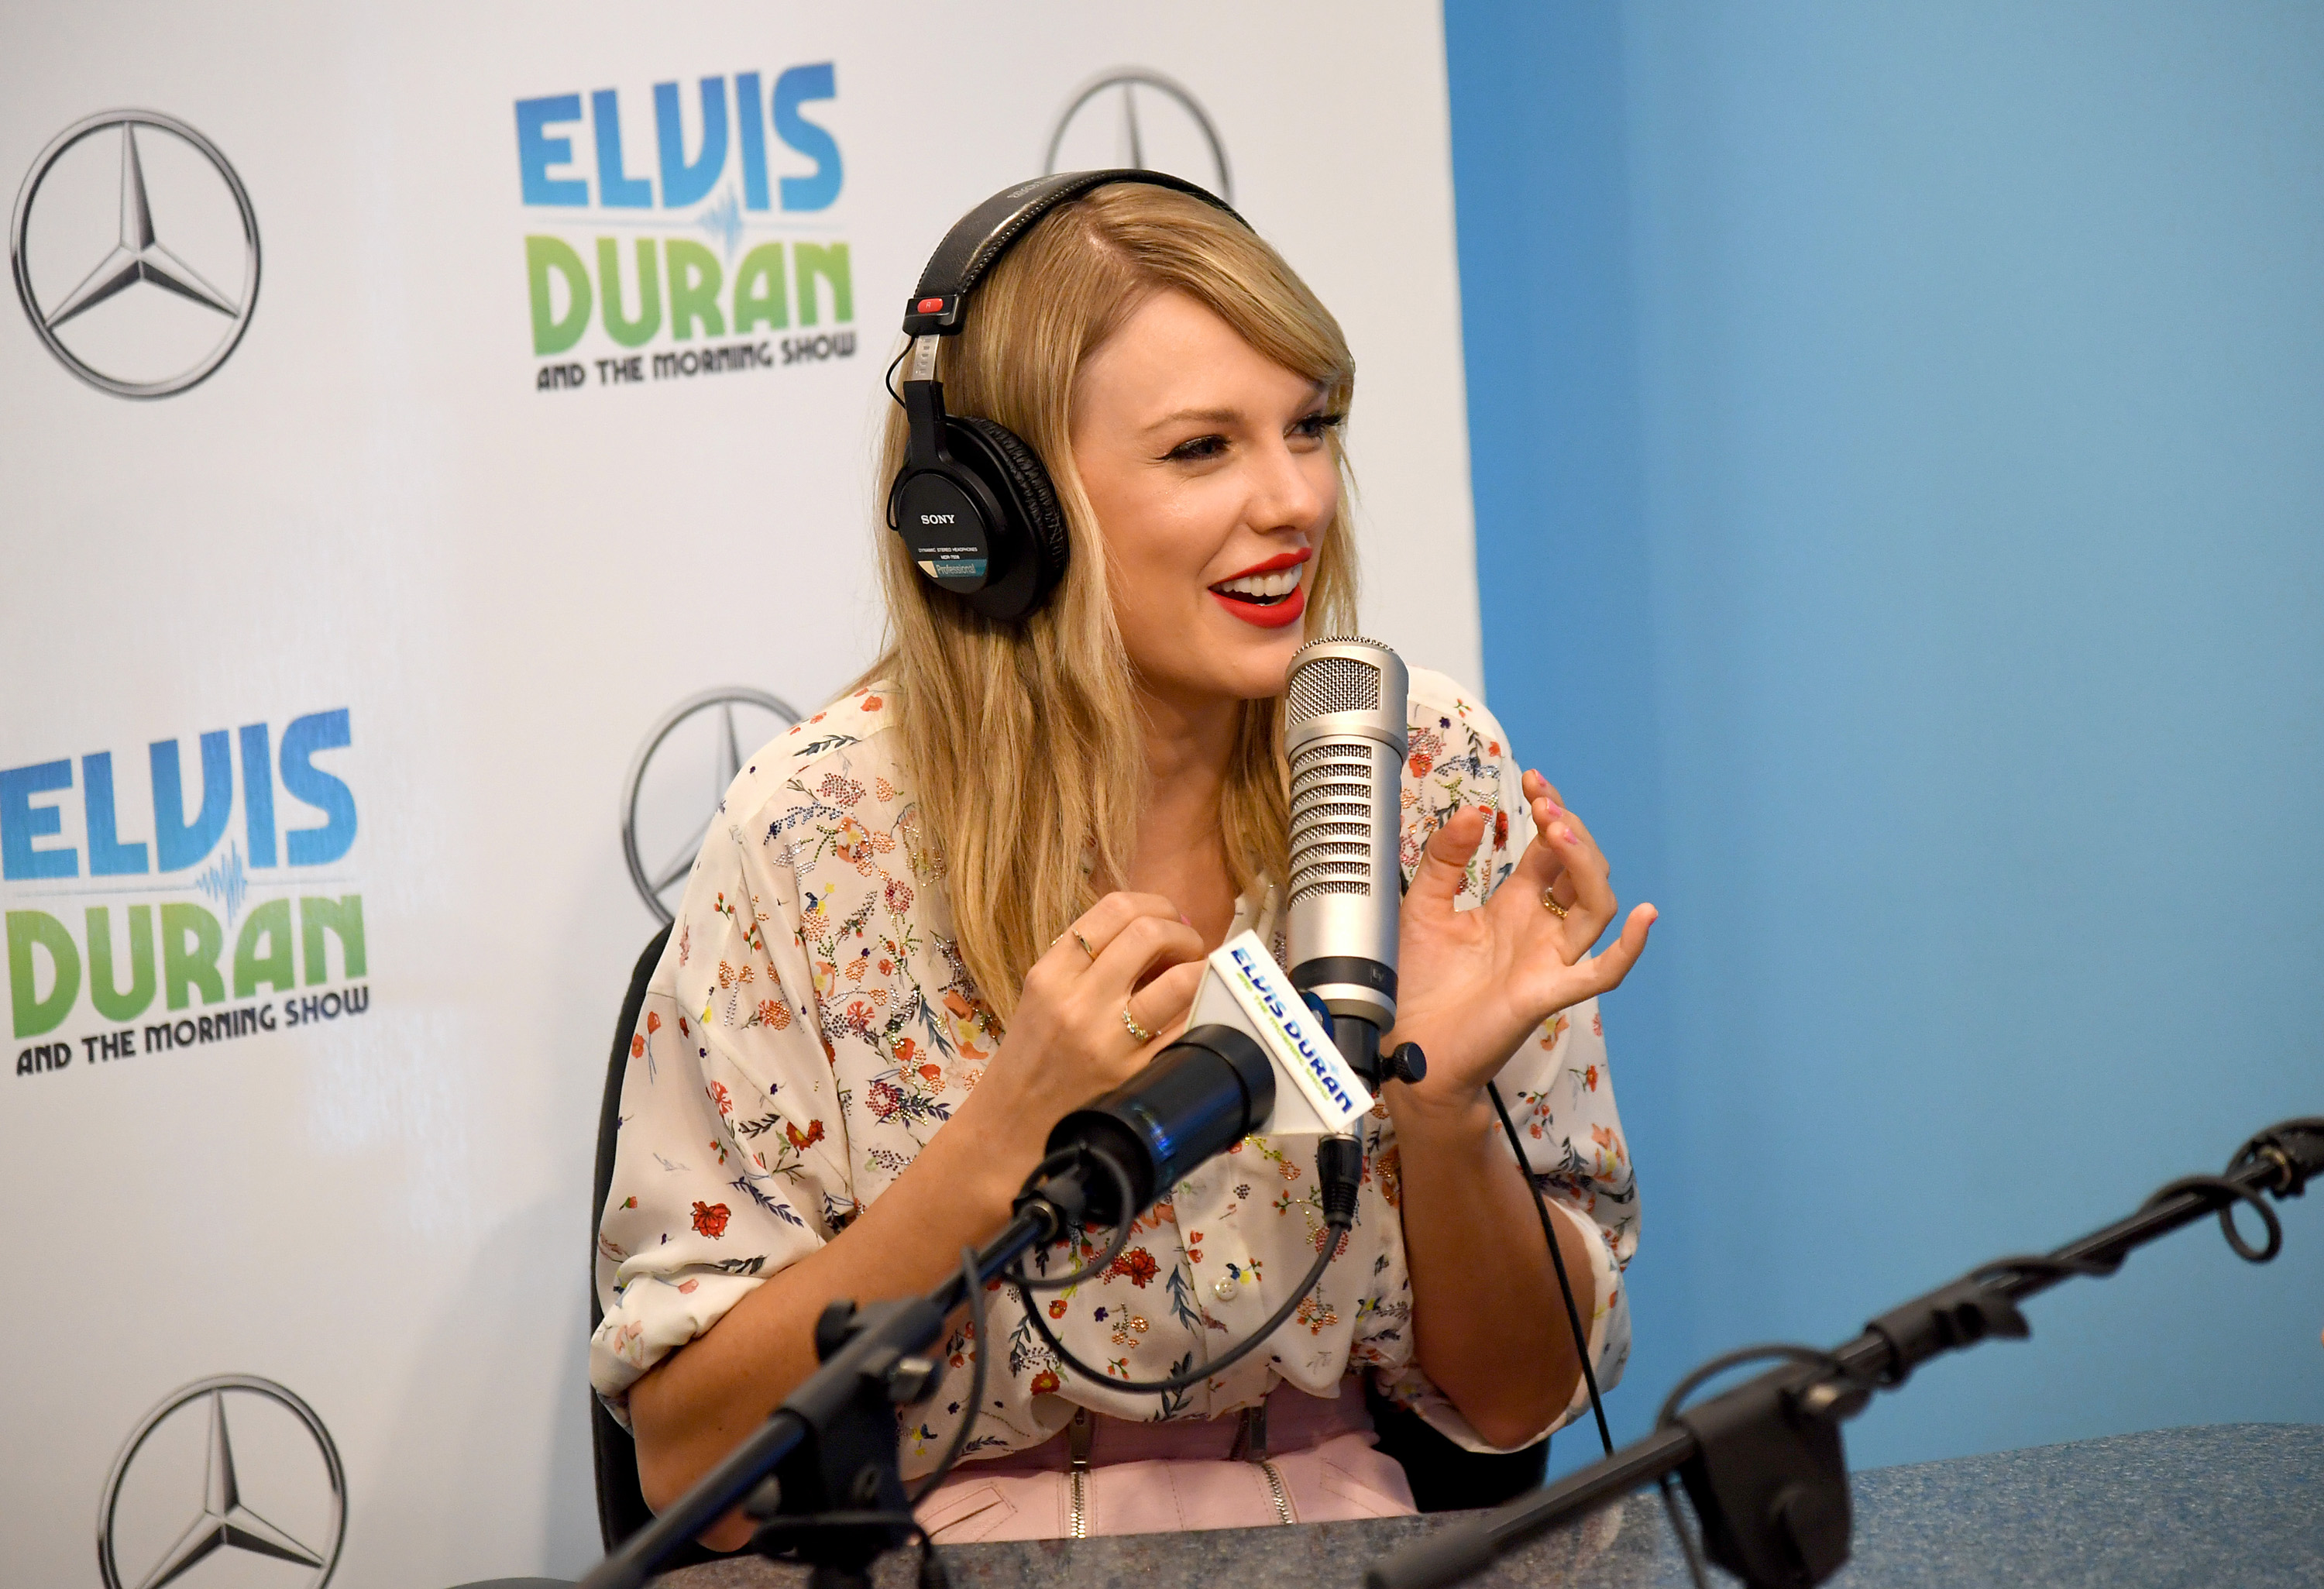 Taylor Swift visits  Elvis Duran And The Z100 Morning Show  at Z100 Studio on August 22, 2019 in New York City. (Photo by Kevin Mazur/Getty Images for ABA)